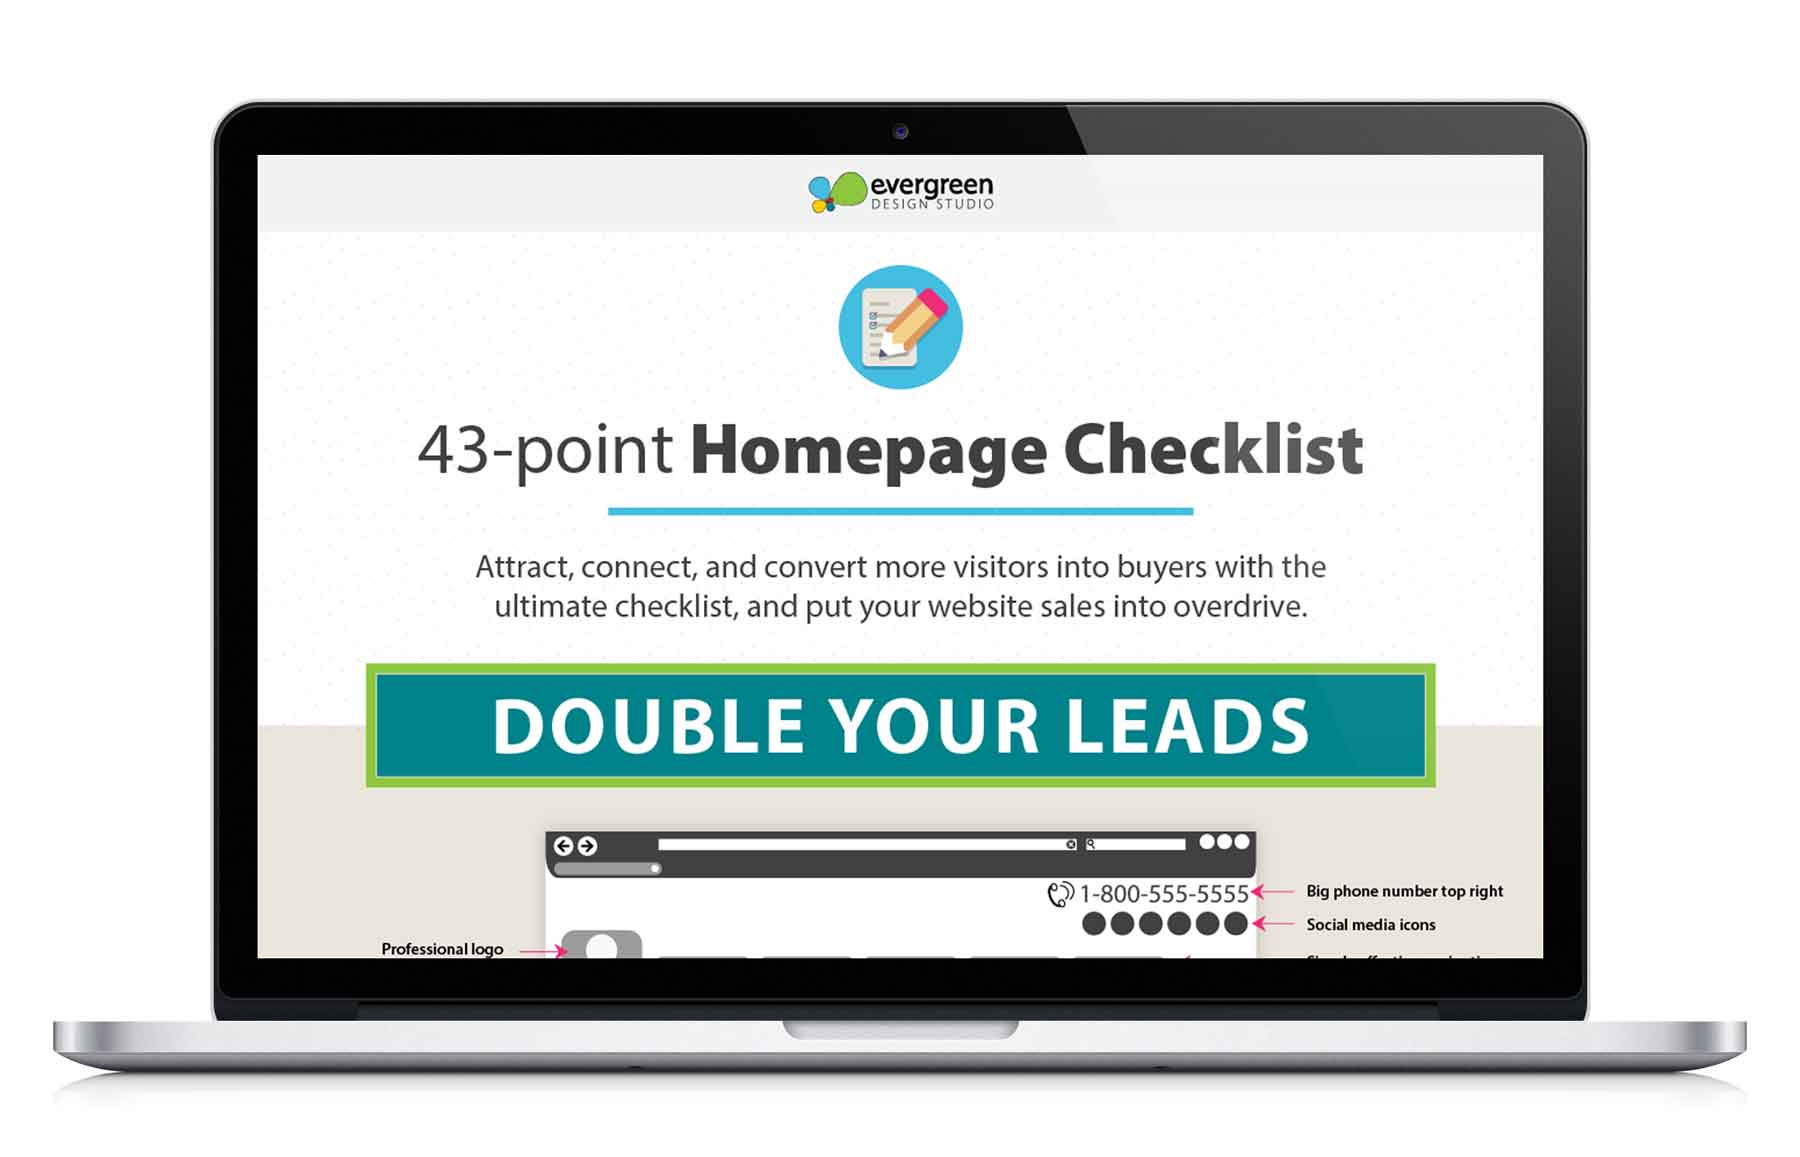 6 Tips to Increase Your Leads and Get Results from Your Homepage